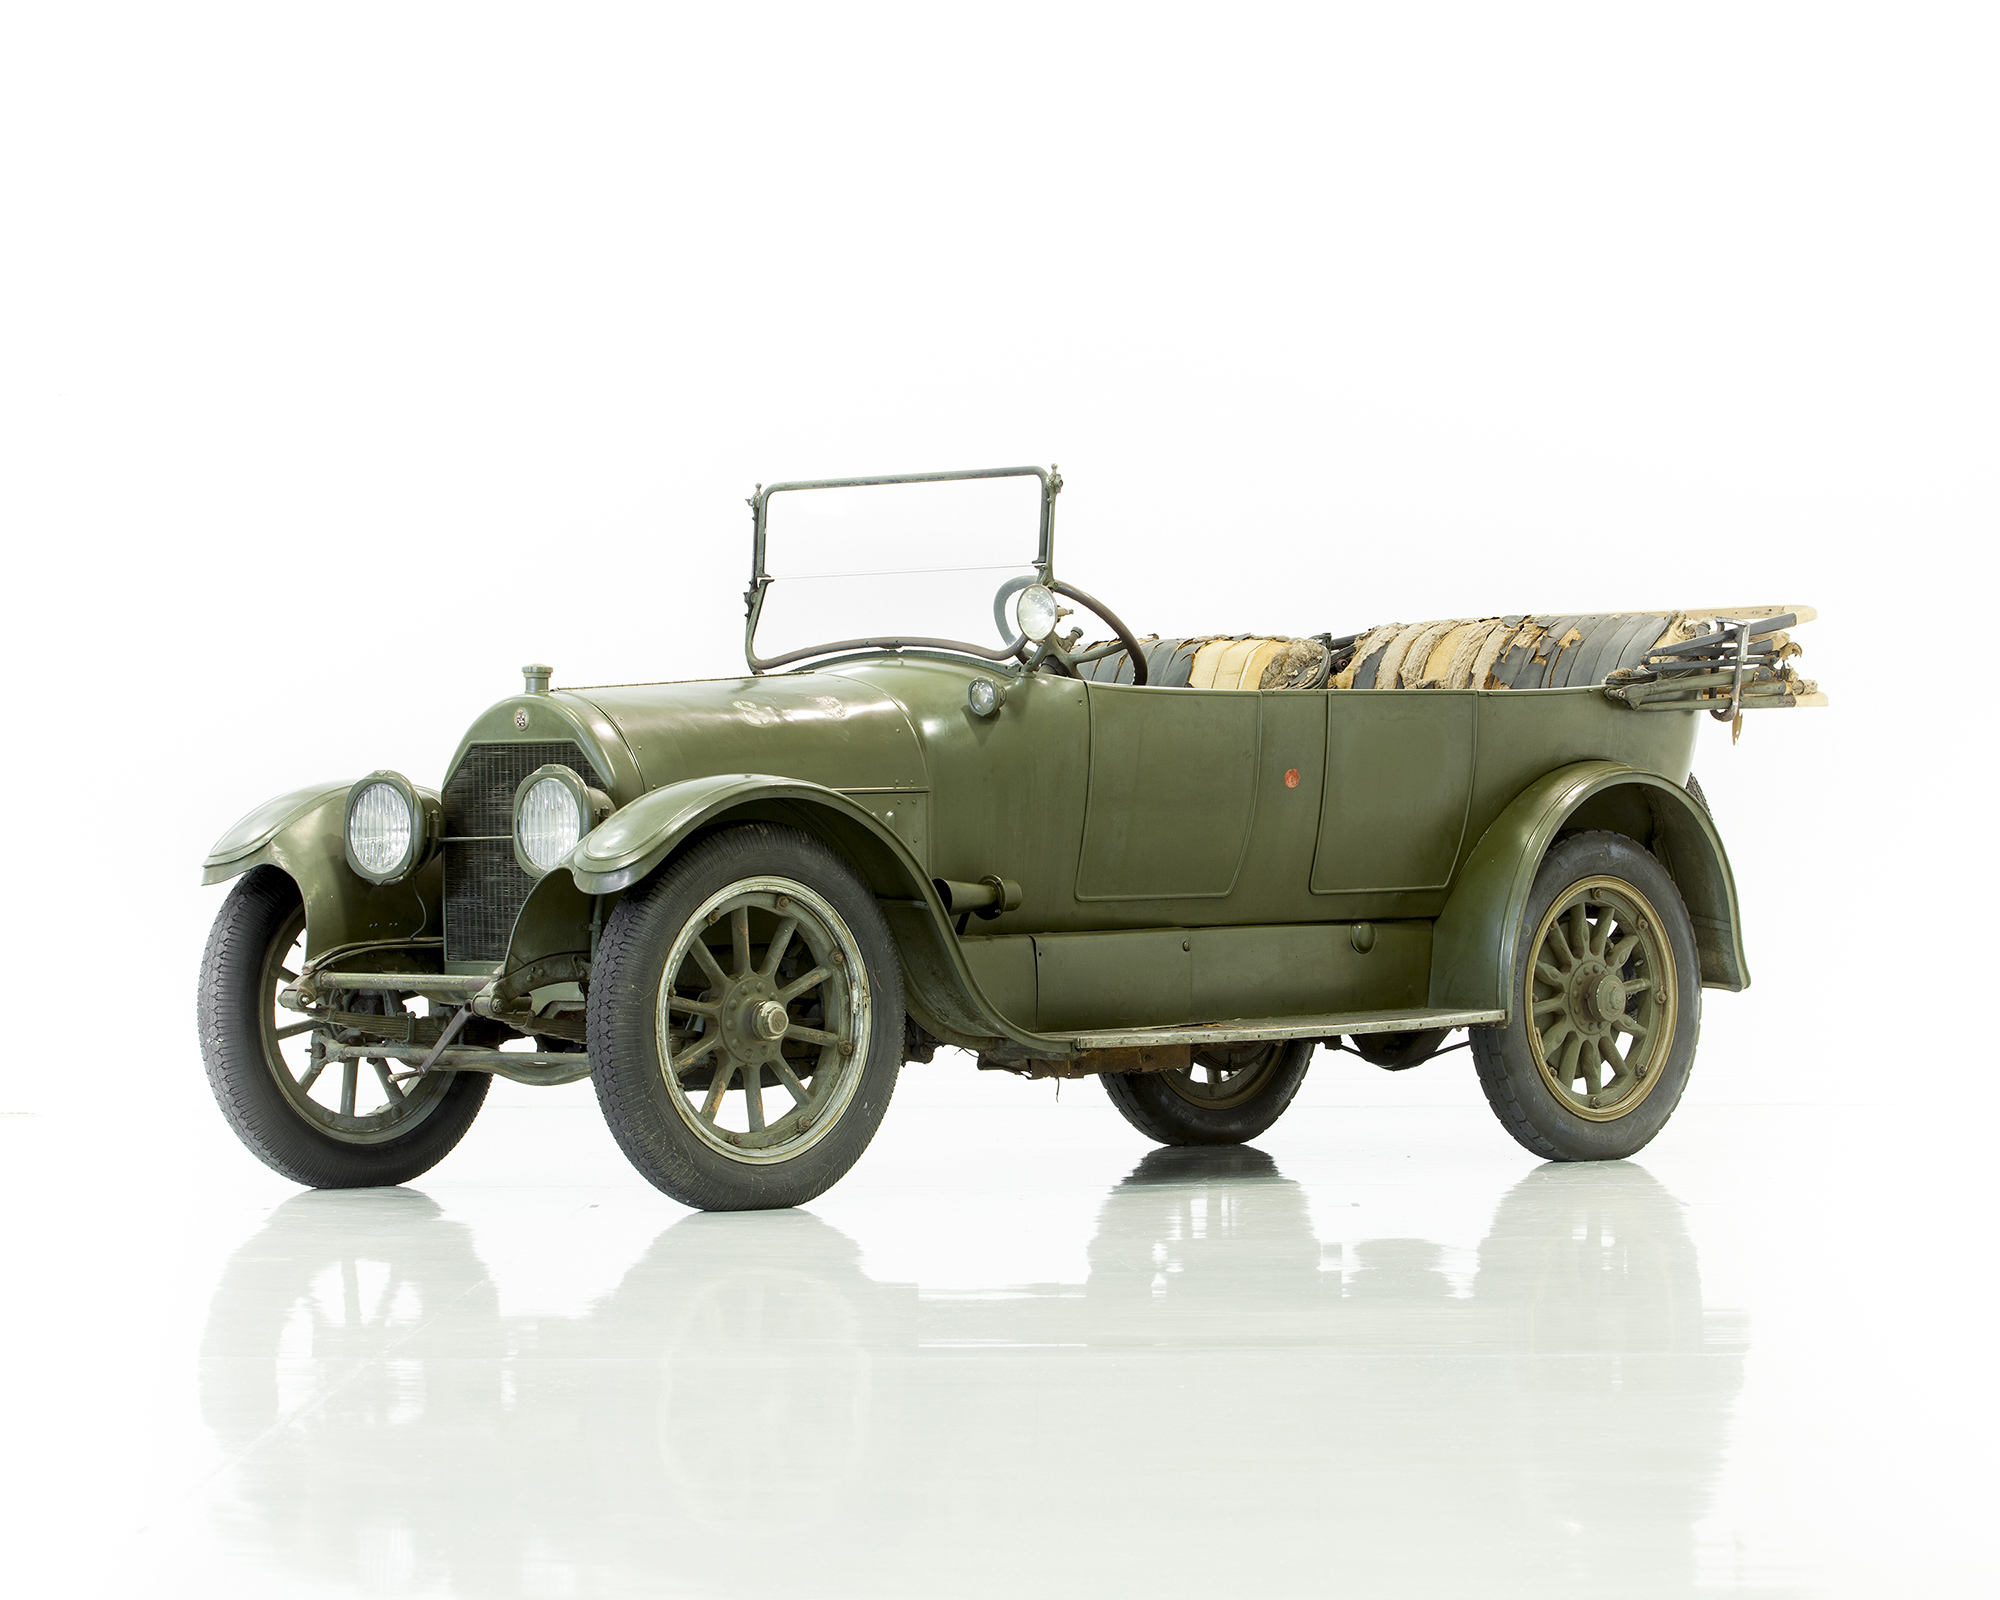 1918 Cadillac Type 57 Is Now Part Of Historic Register